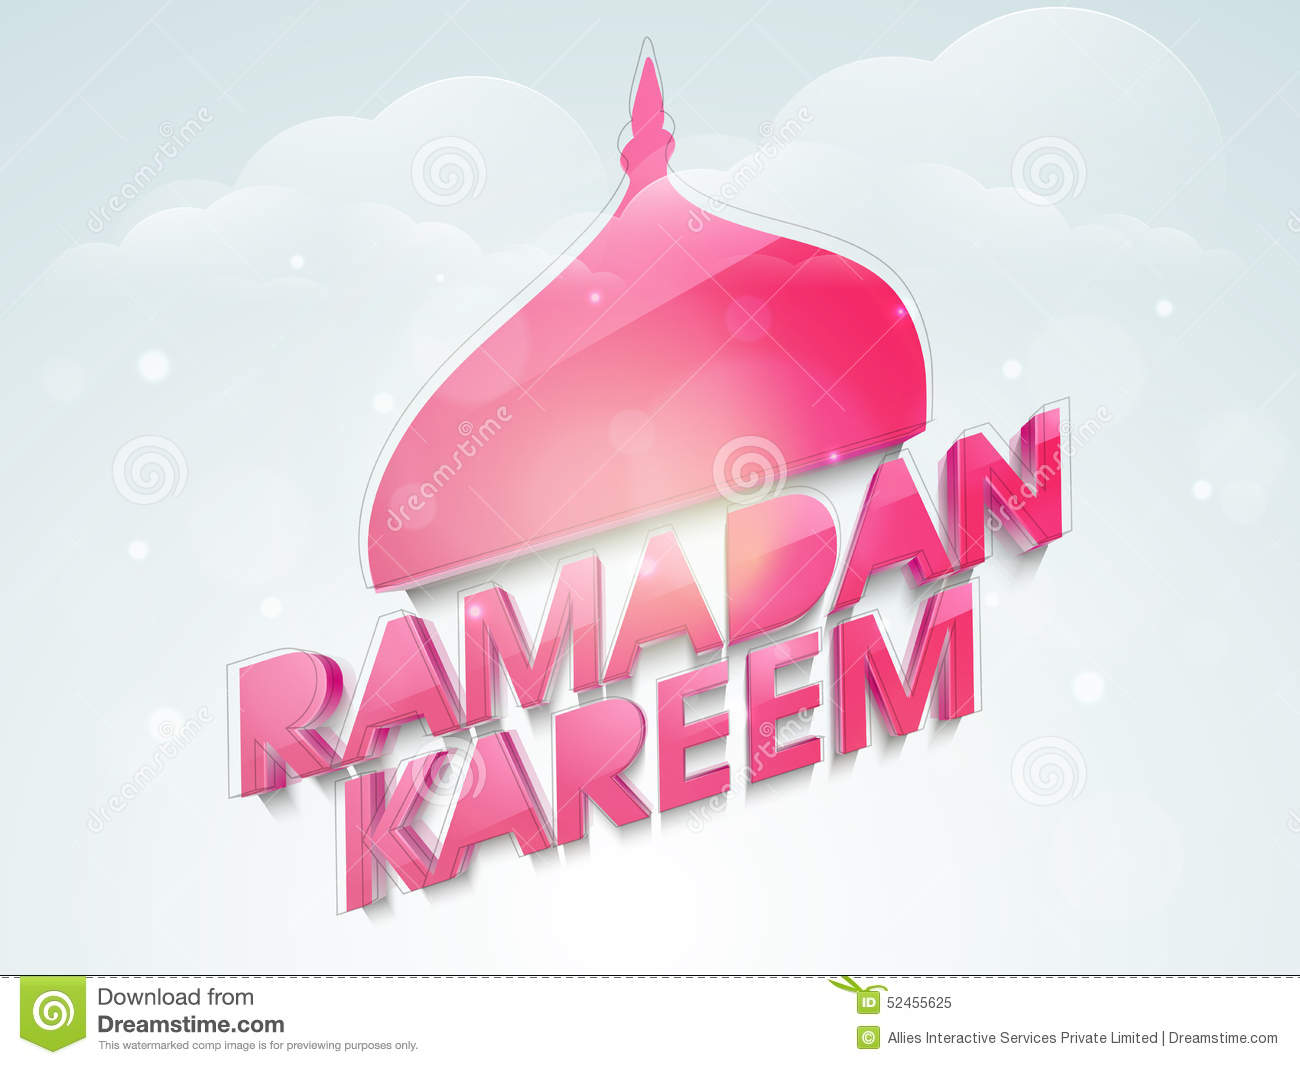 Greeting card for muslims holy month ramadan kareem celebration download greeting card for muslims holy month ramadan kareem celebration stock illustration illustration of m4hsunfo